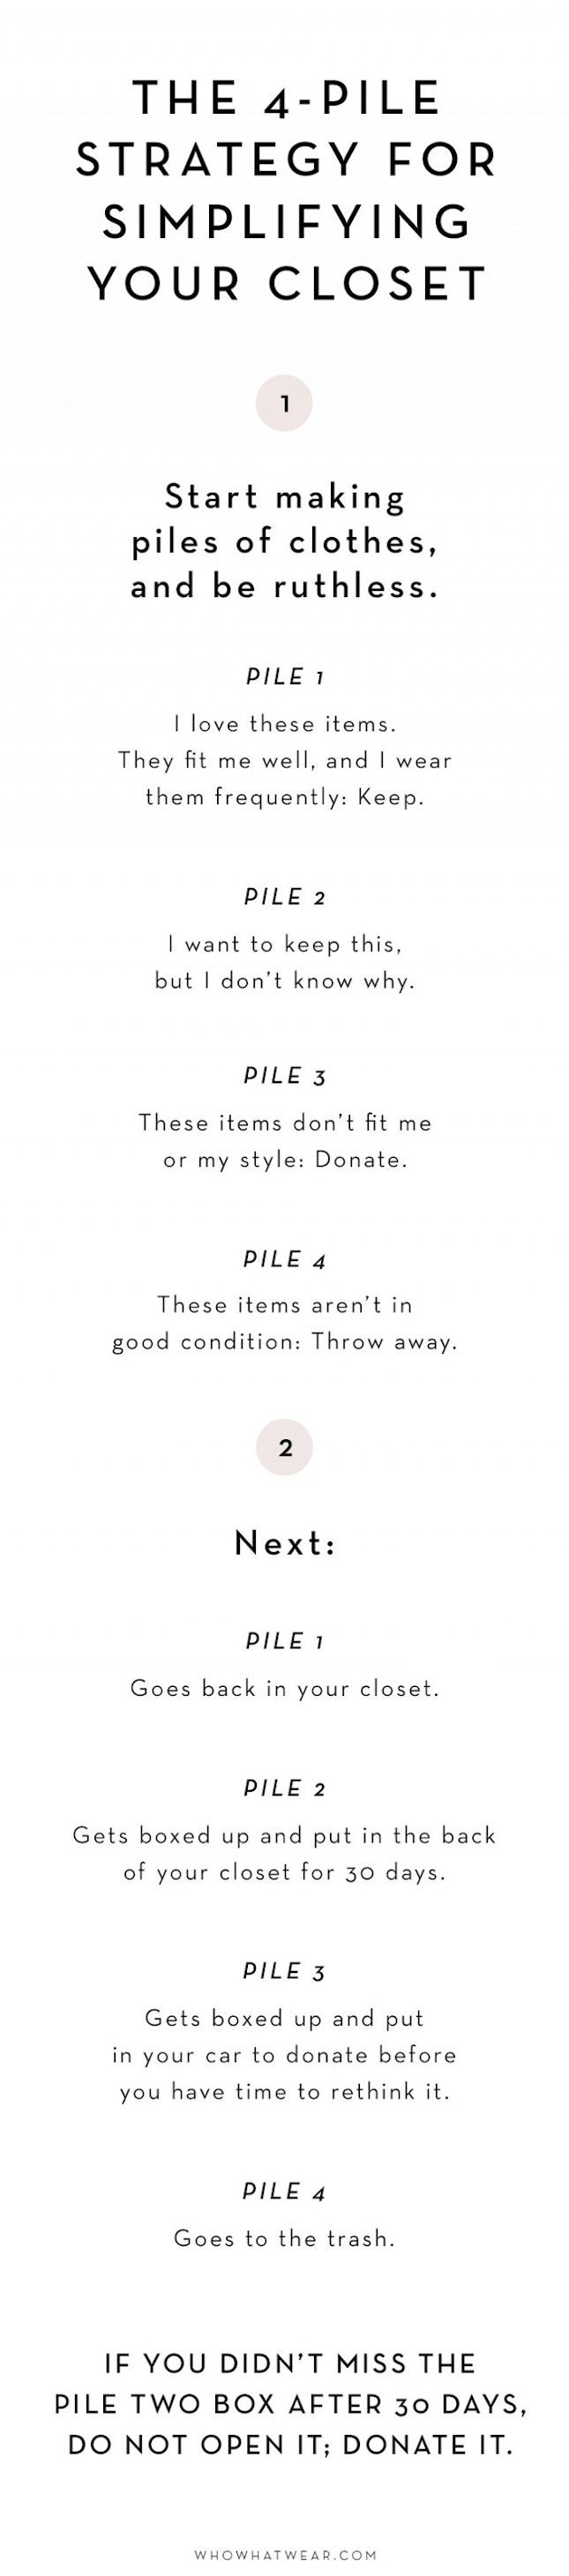 Bookmark this to learn all about the 4-pile strategy for simplifying your closet to achieve a more minimalist home.